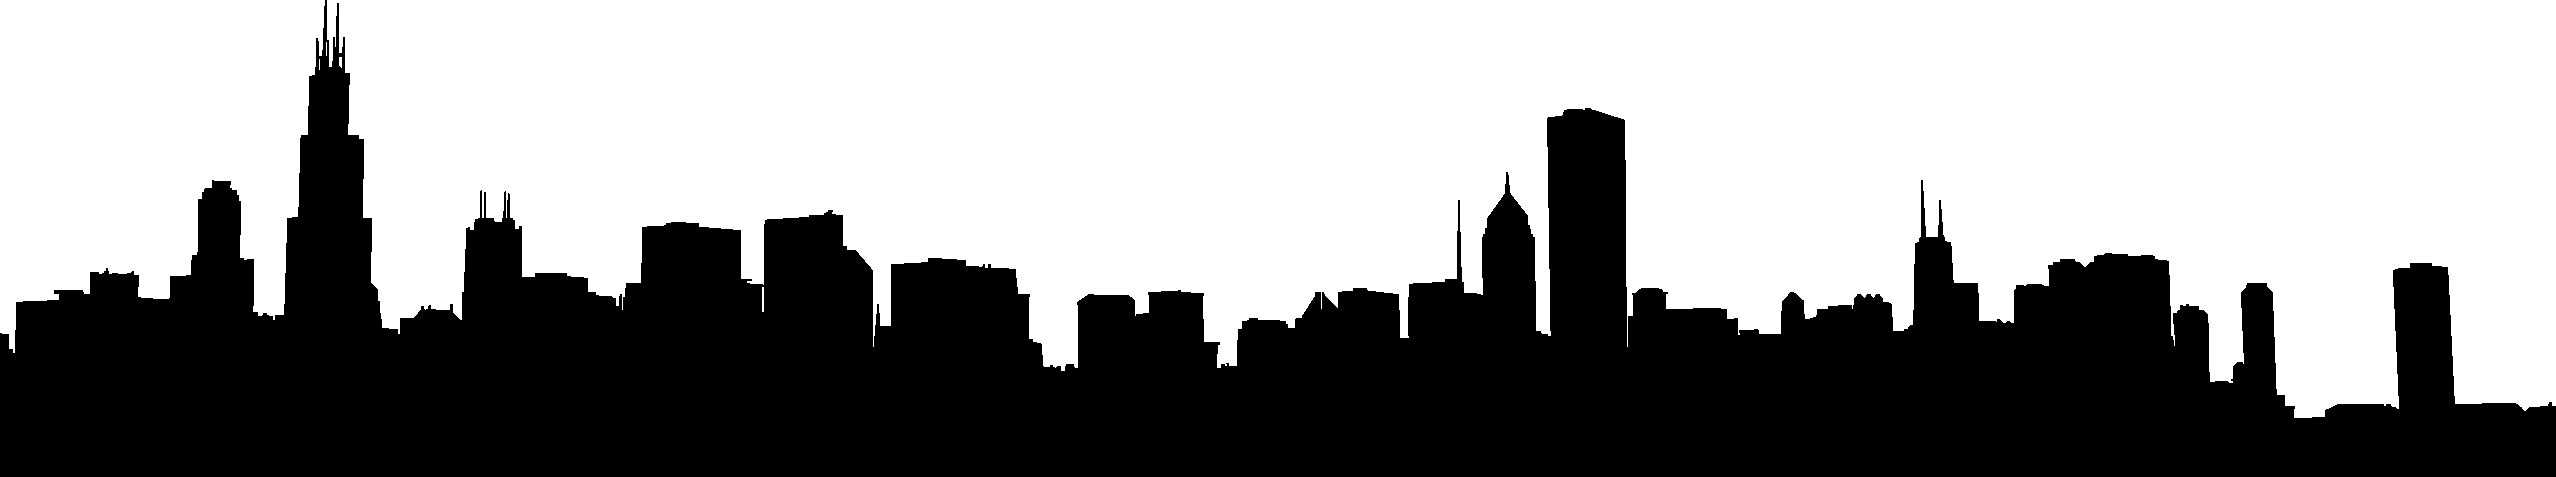 chicago city skyline silhouette at getdrawings com free for